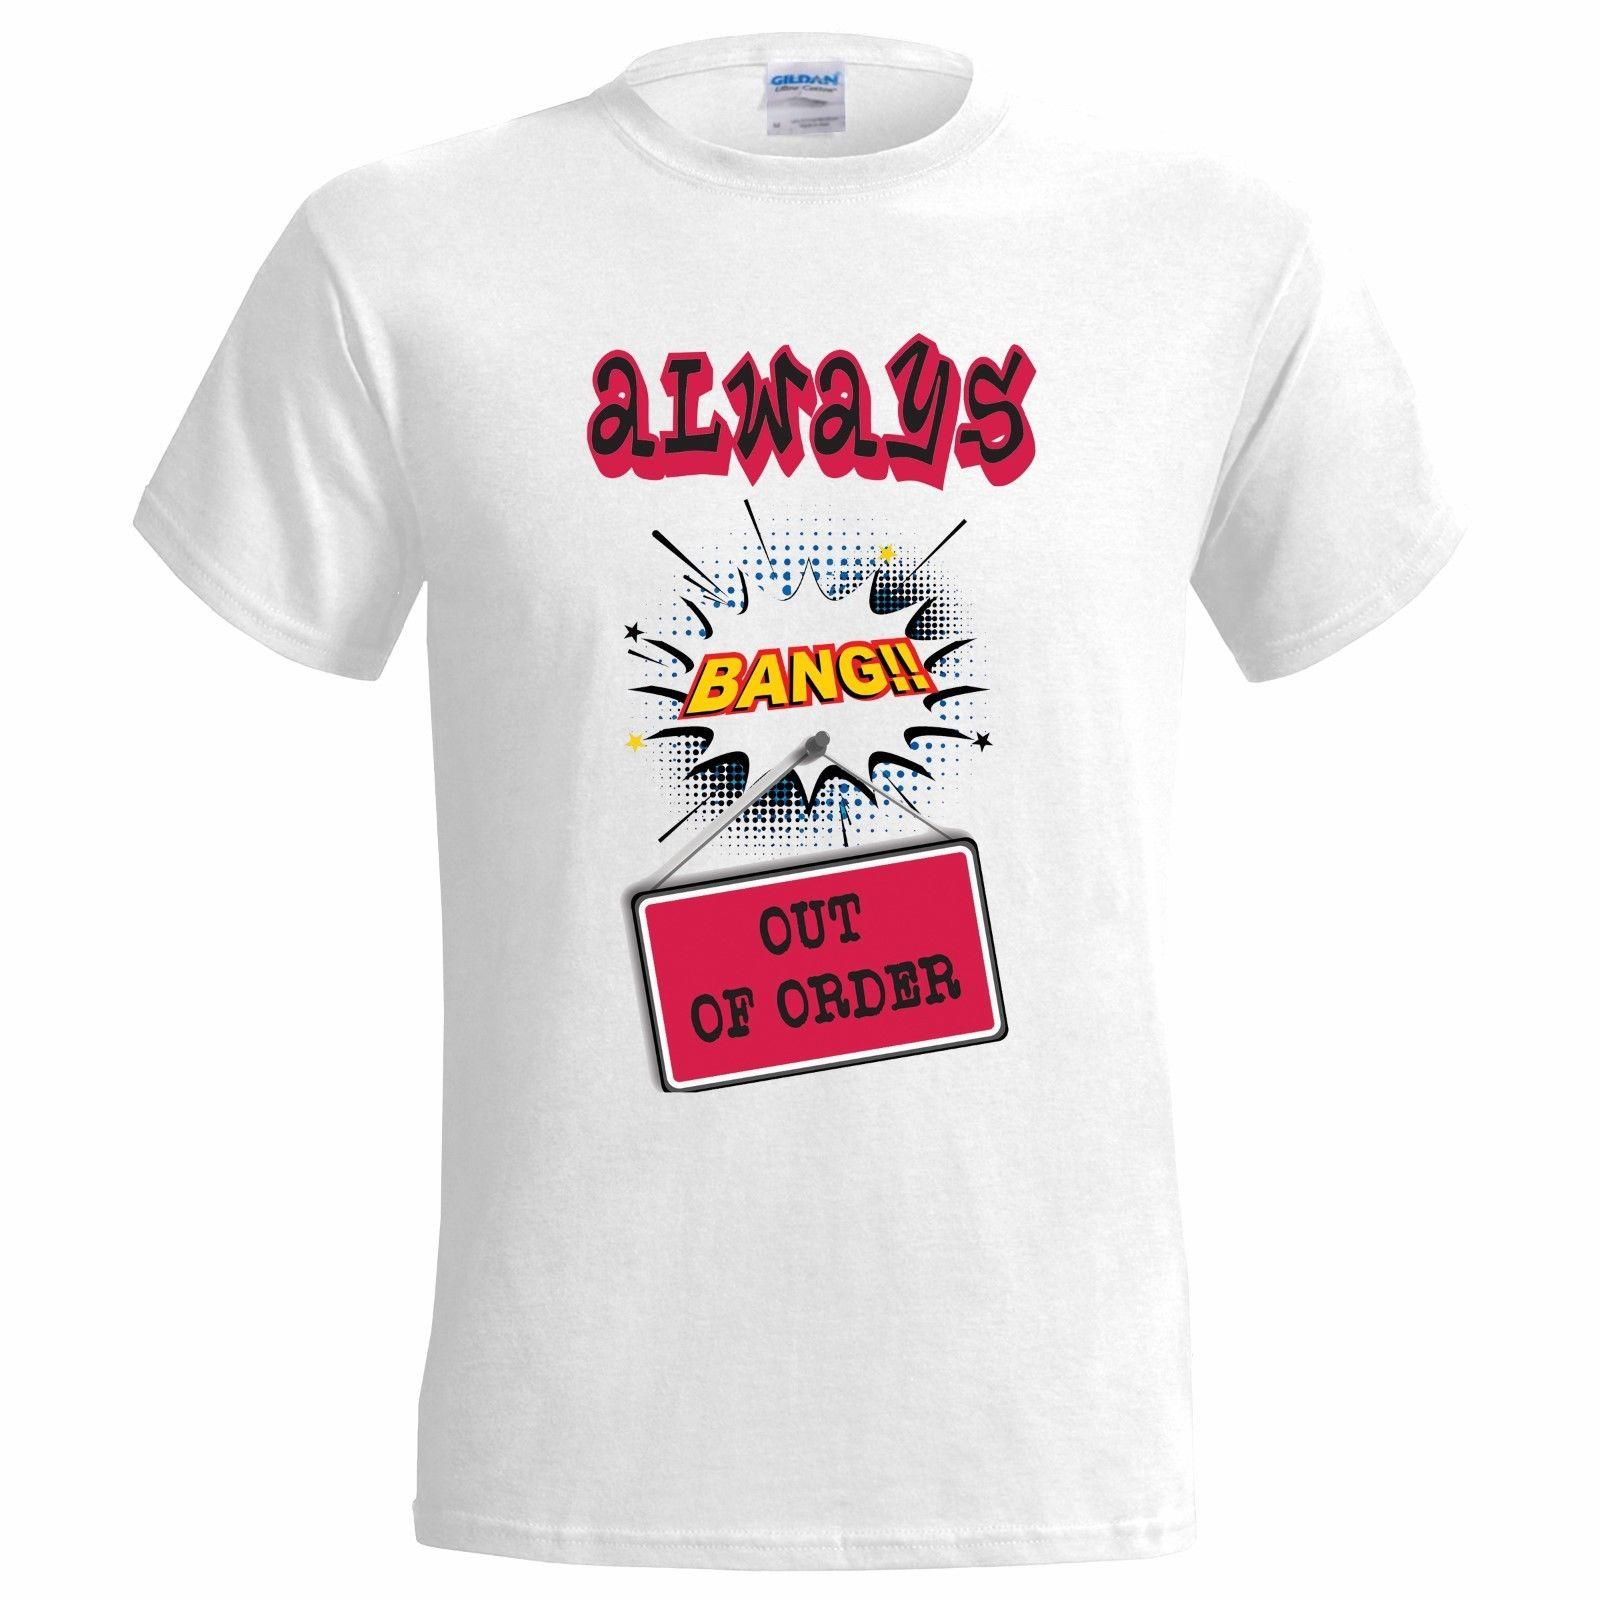 abc4d3aec49 BANG OUT OF ORDER MENS T SHIRT DRUNK DRINKING STAG GIFT PARTY PRESENT  CHRISTMAS Men Women Unisex Fashion Tshirt Novelty T Shirt Funny Printed T  Shirts From ...